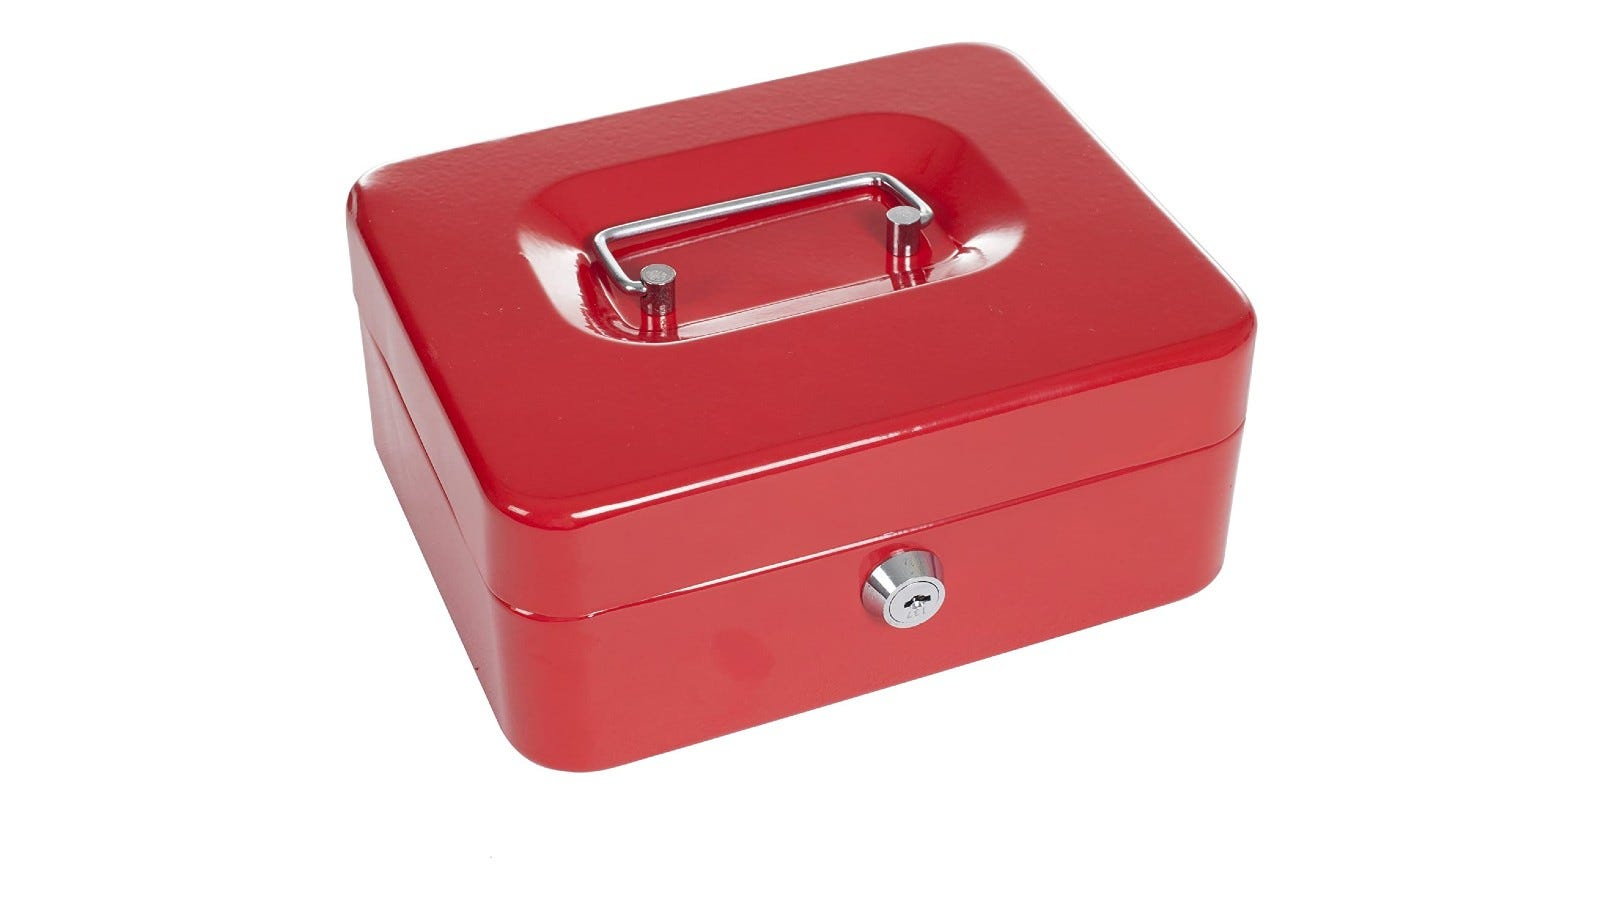 a red metal cash box with a silver lid and a lock